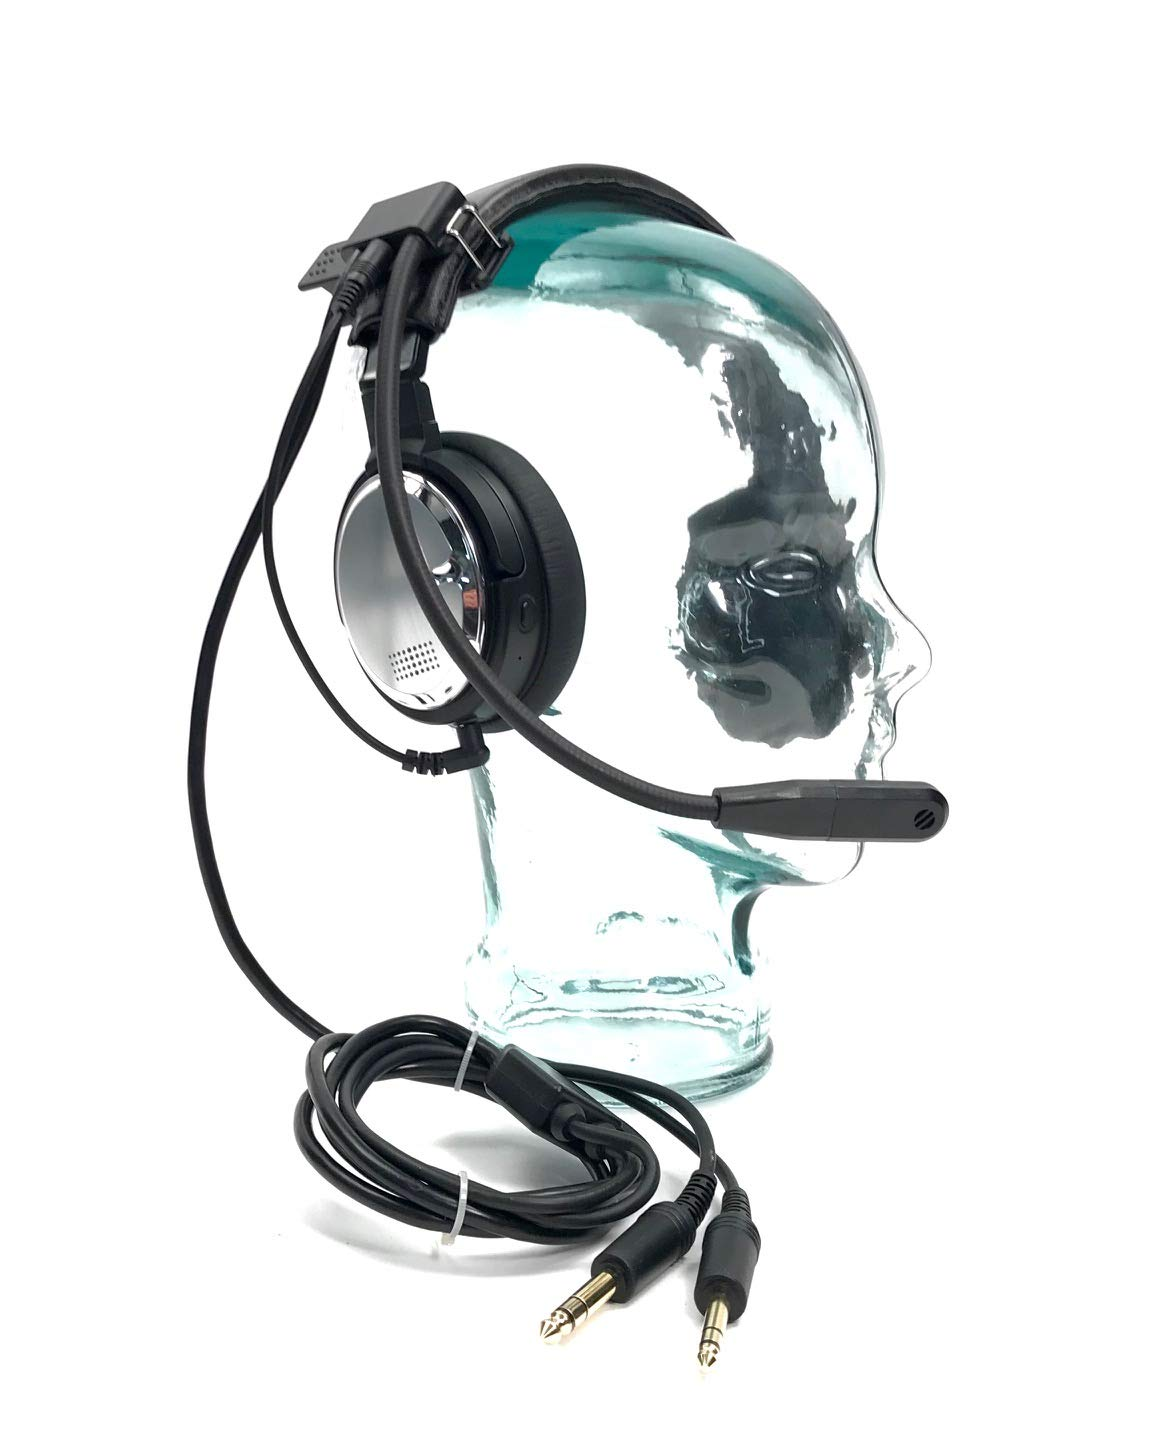 Amazon.com: EarHart Pilot Headset ANR ANC Bluetooth Premium Aviation  Headphones Active Noise Reduction MP3 Input Airplane, Helicopter: GPS &  Navigation